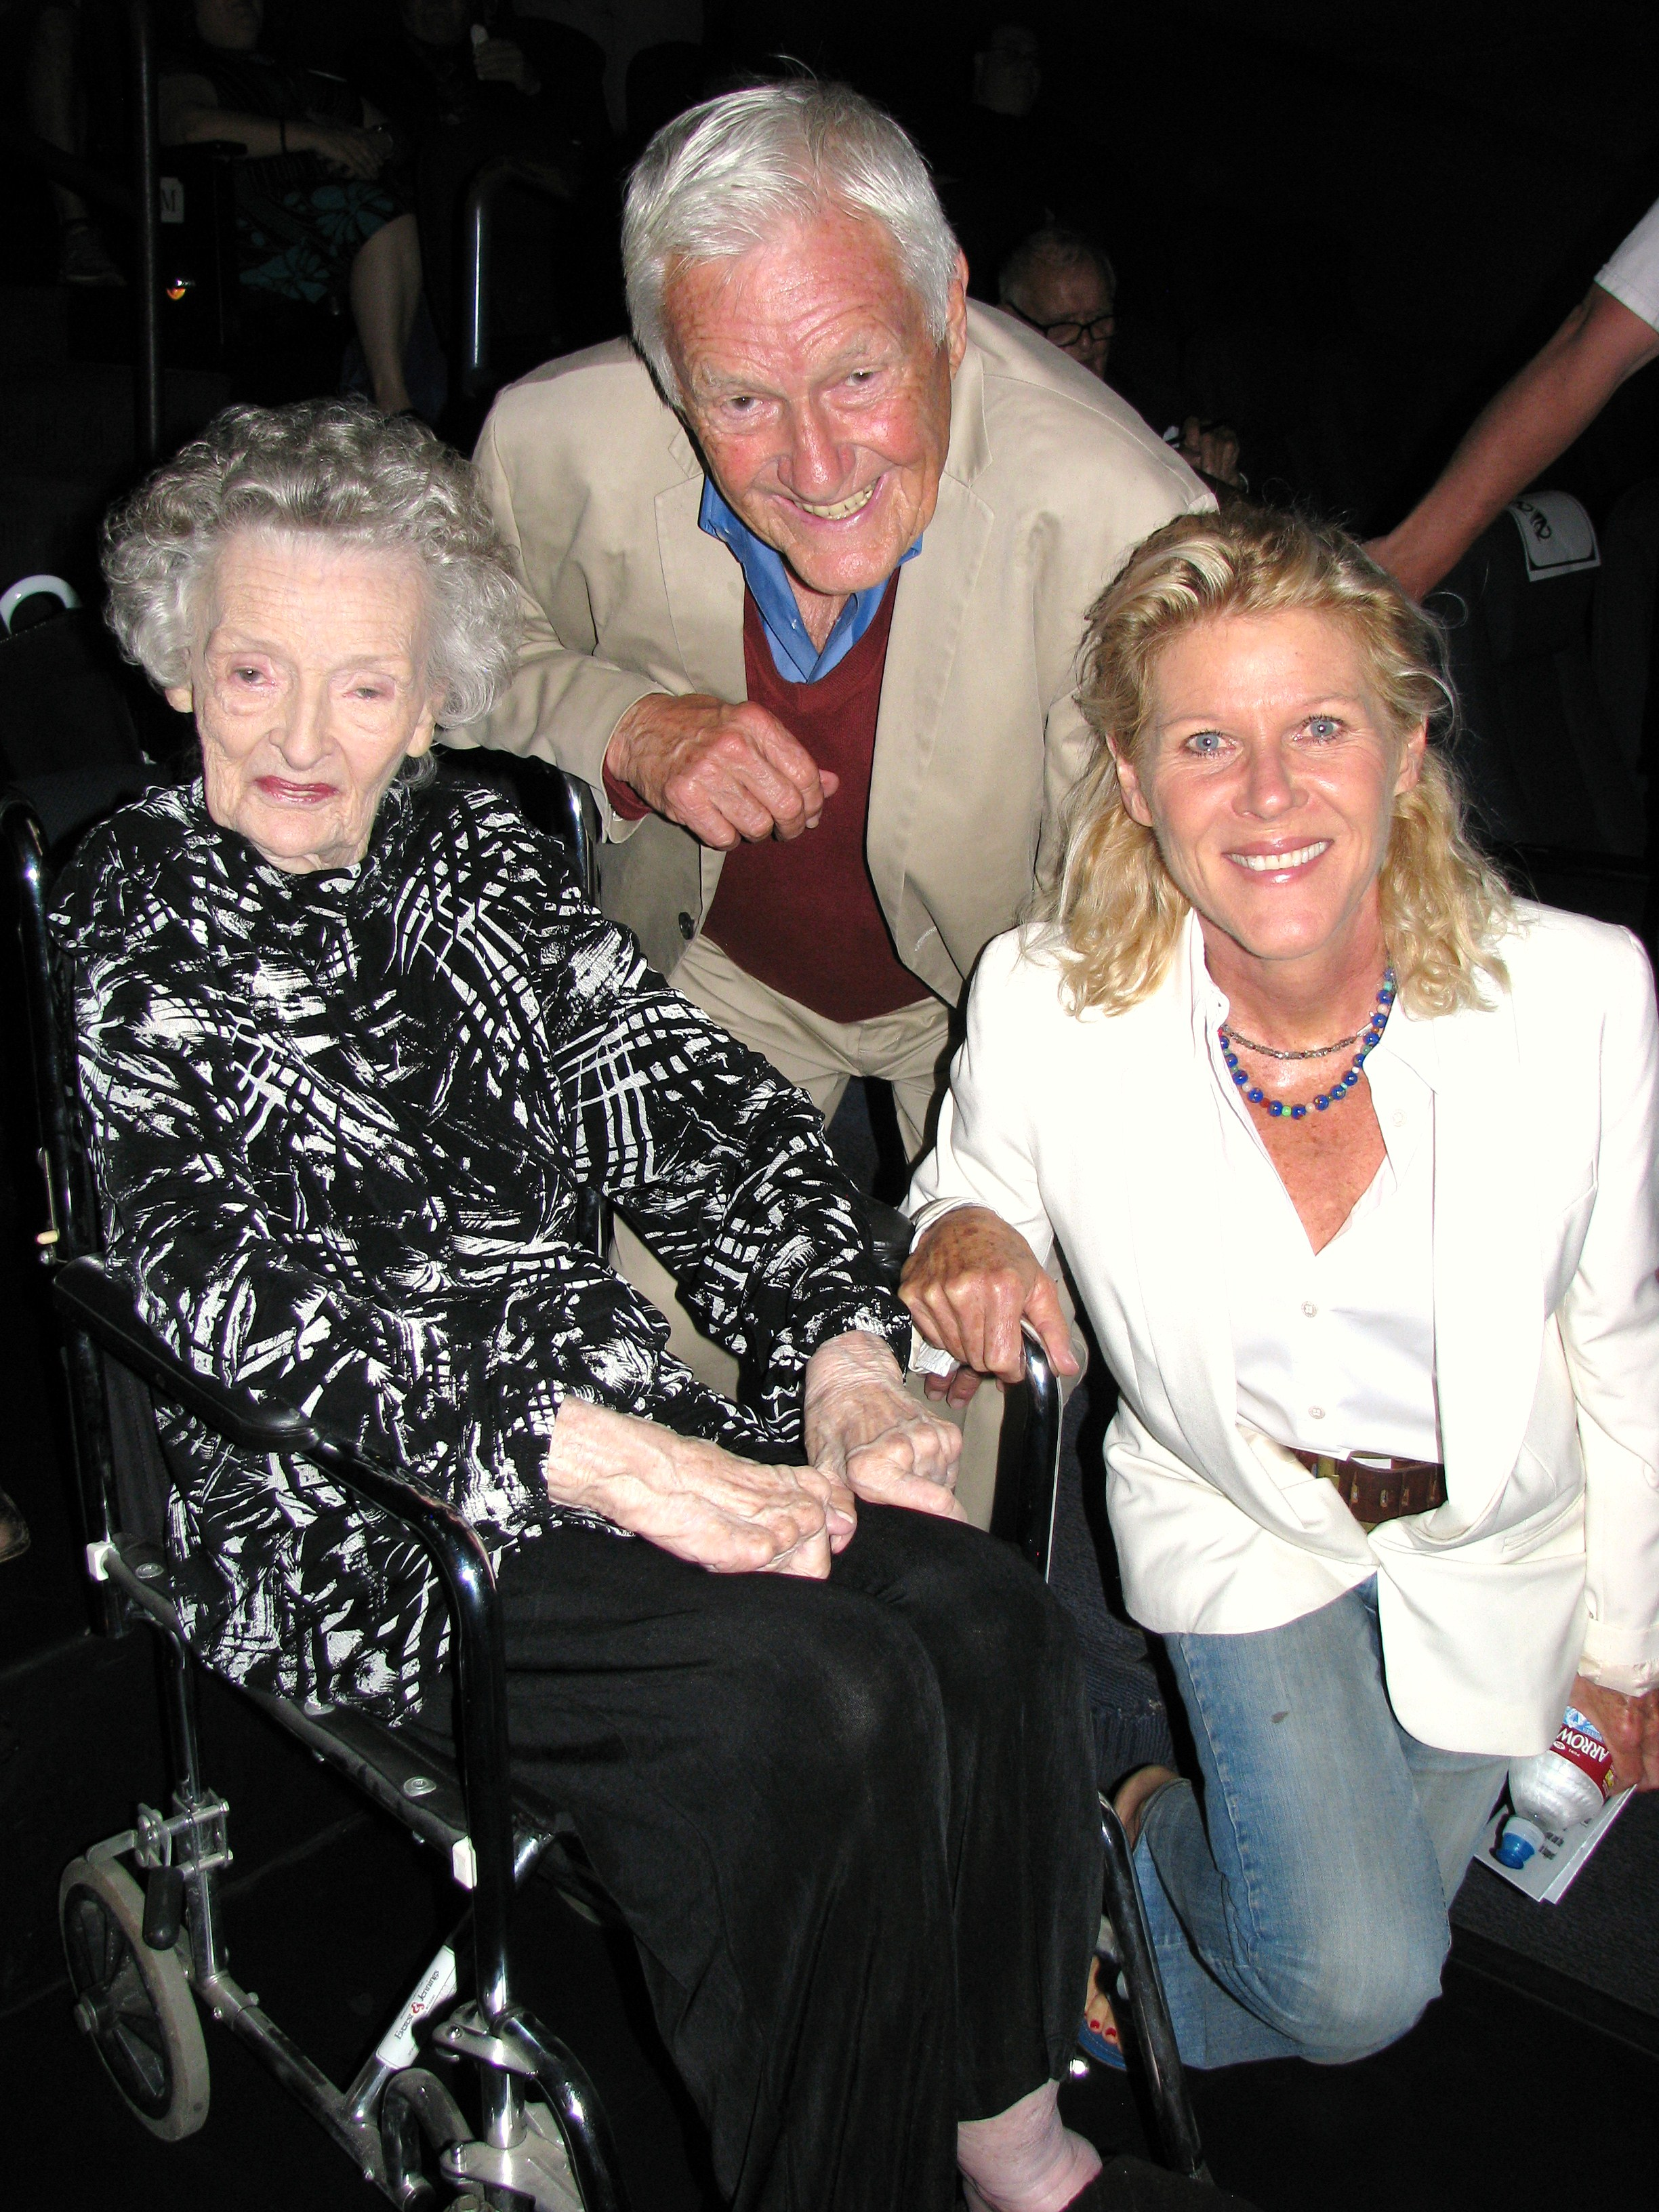 One of the Sons Founding Members actor Orson Bean and his wife Alley Mills (from the Wonder Years) pose with Lois.